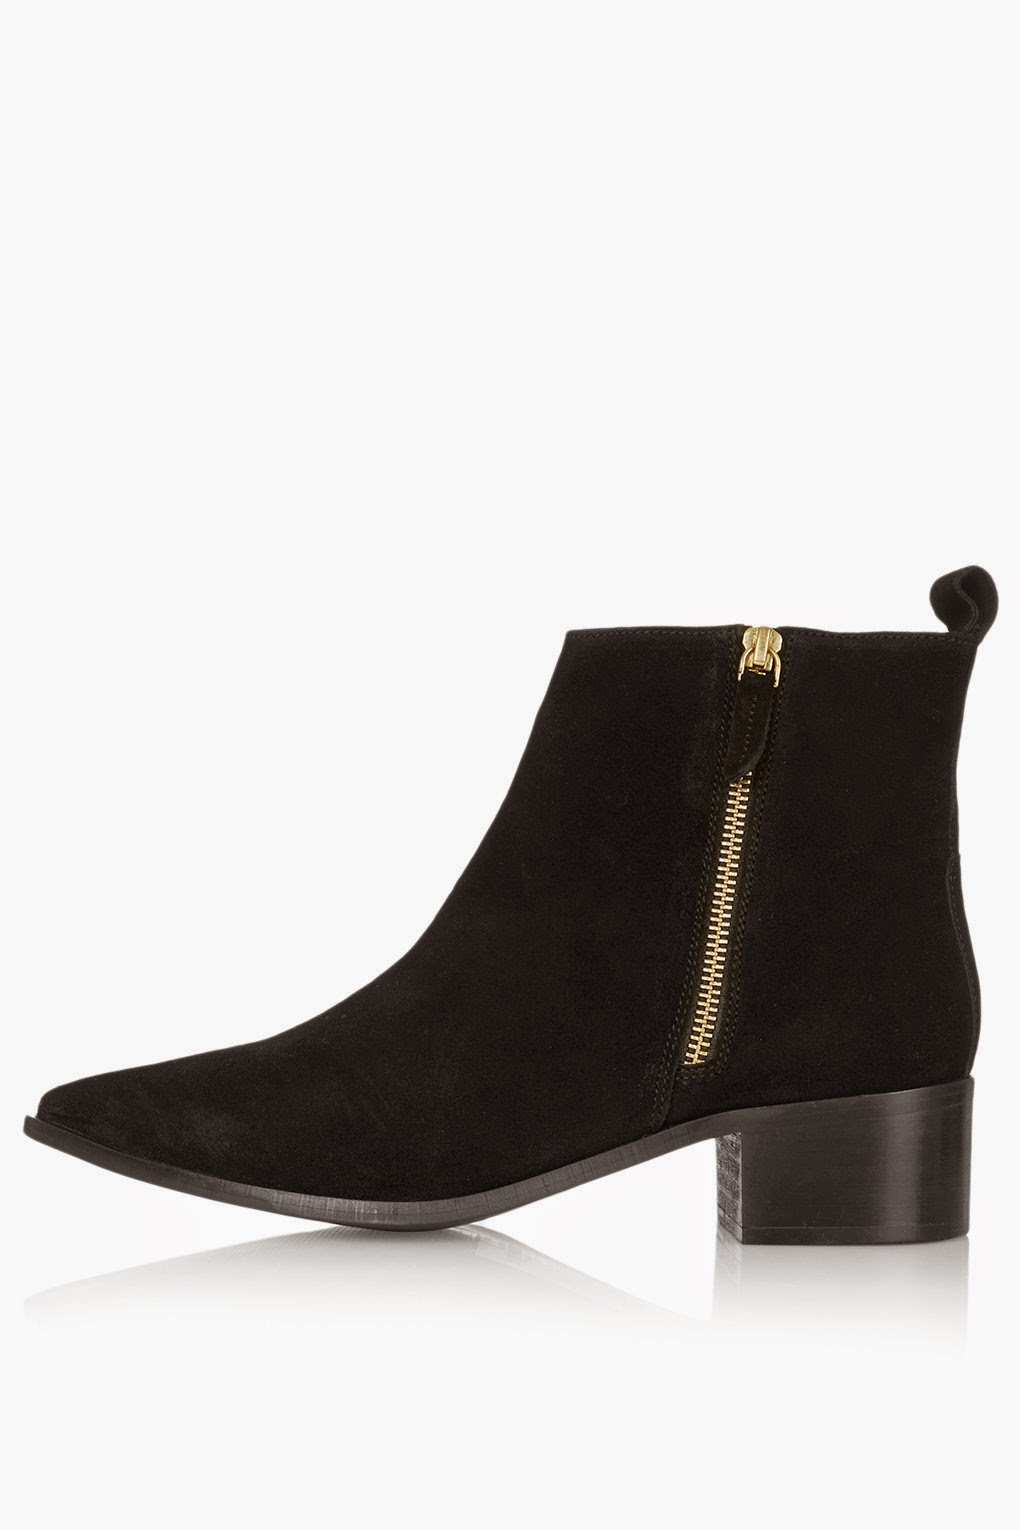 topshop black pointed boot, black suede pointed boot,